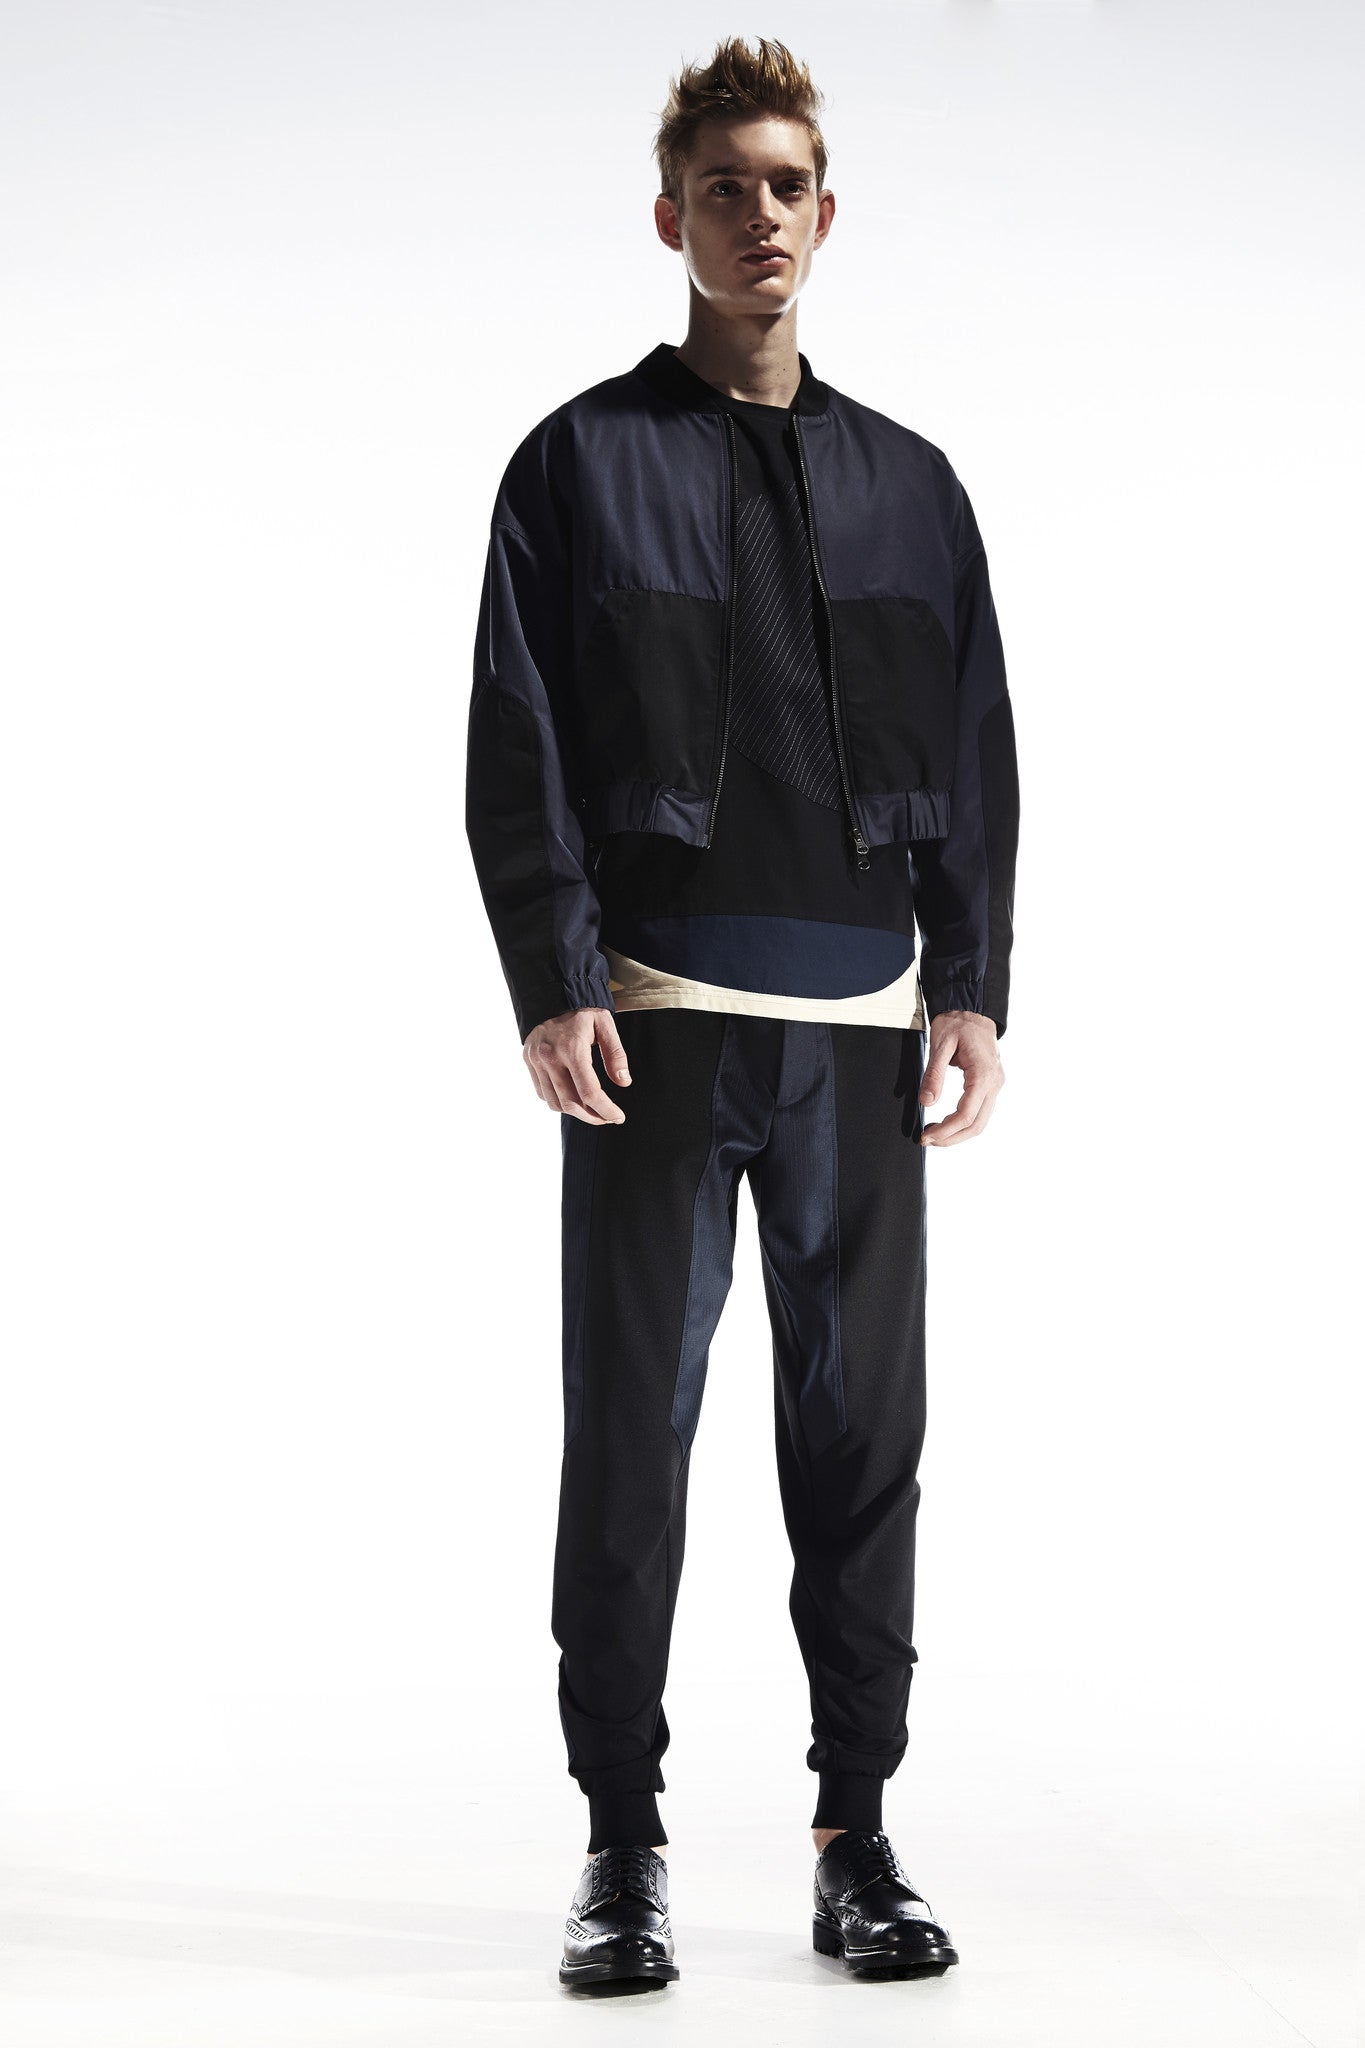 OUTTERS - BOMBER JAKET WITH DETACHABLE LAYER